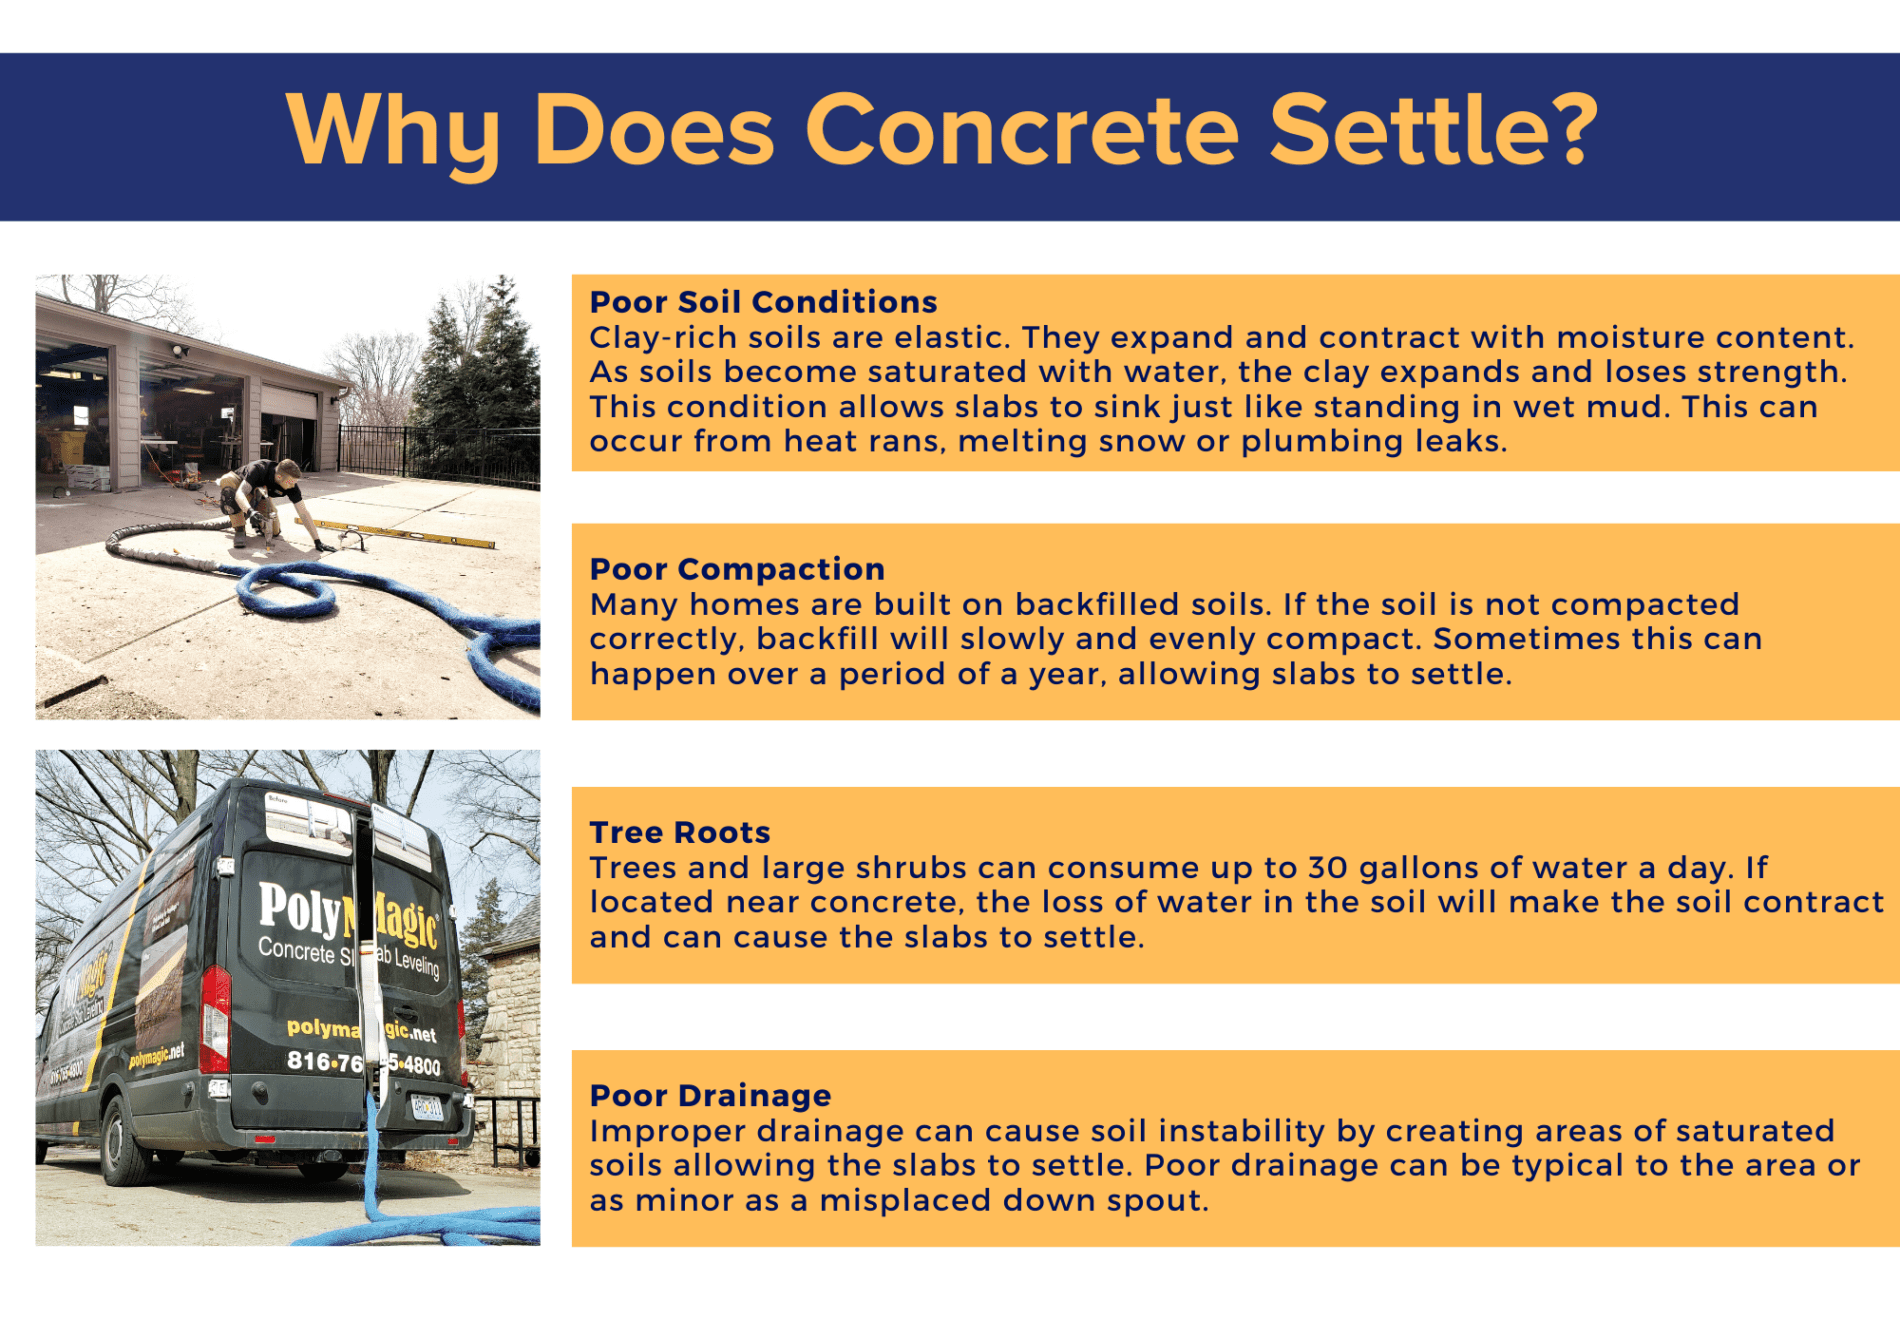 Why Does Concrete Settle?